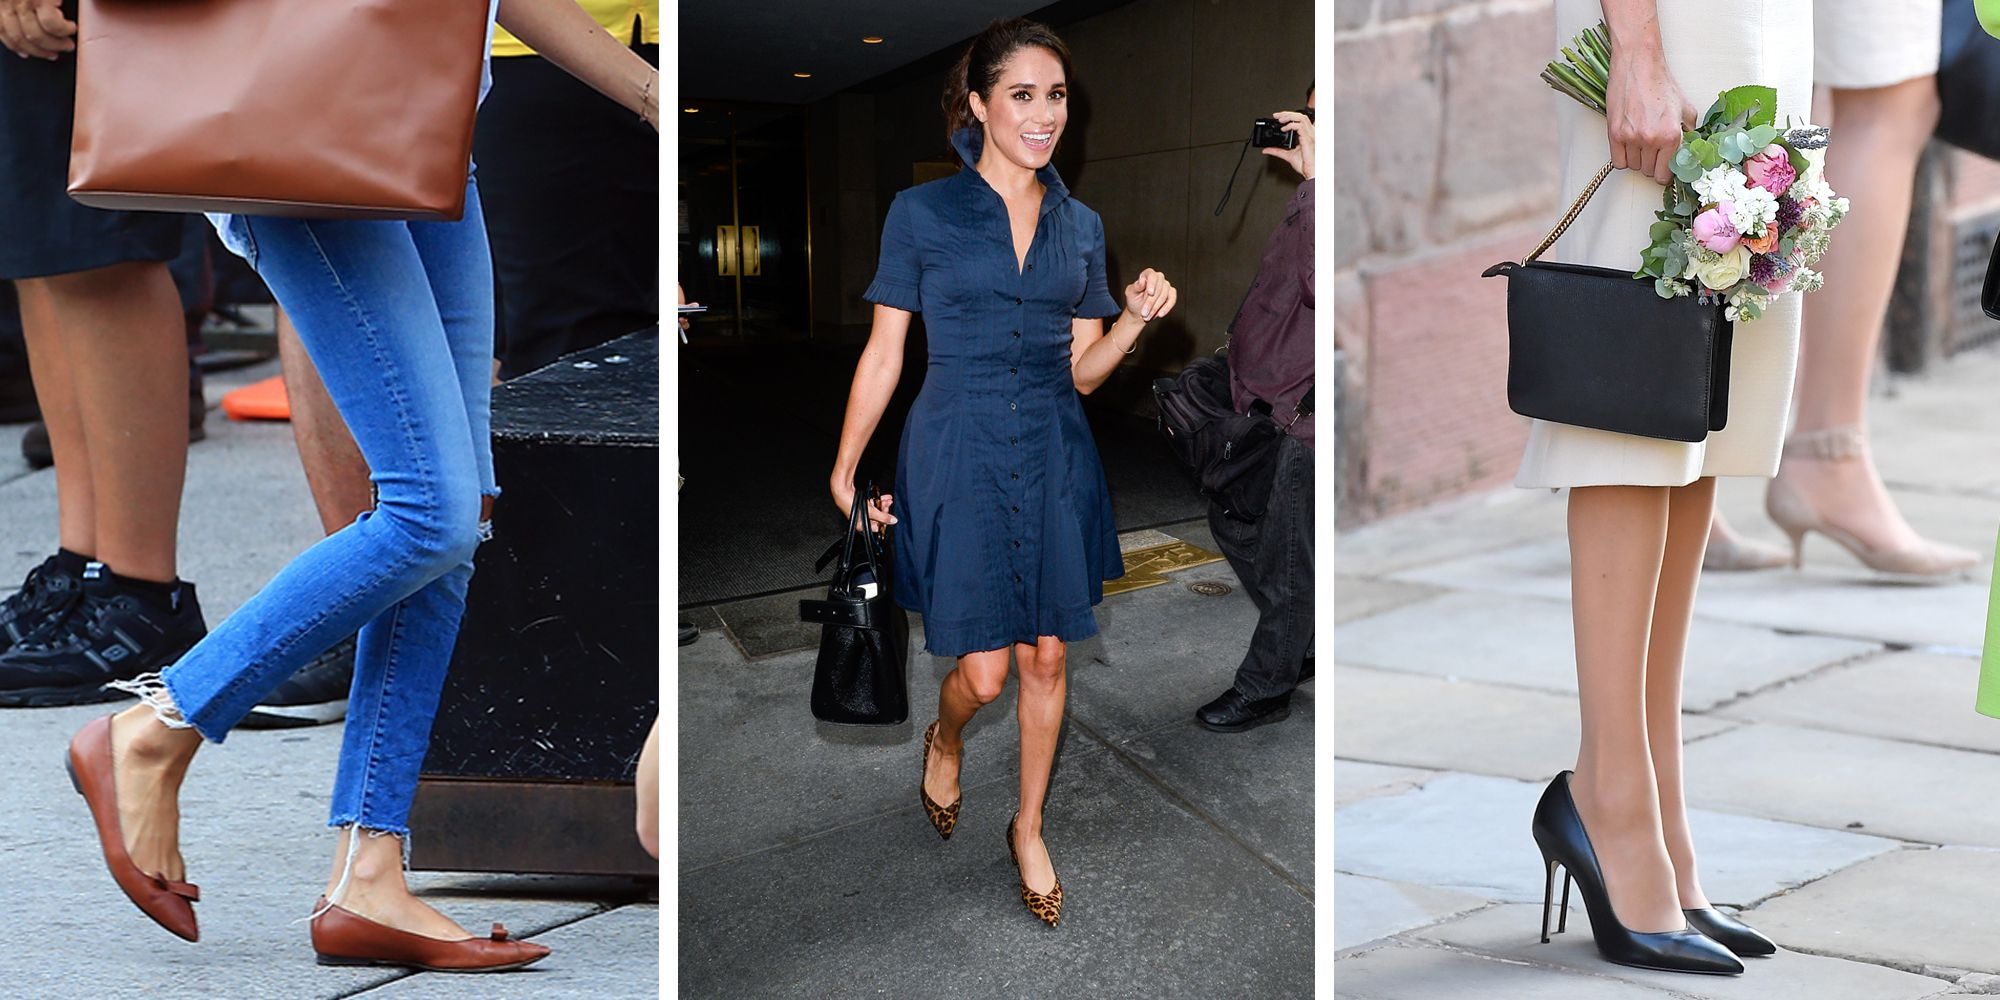 Definitive Proof Meghan Markle Is Obsessed With This Shoe